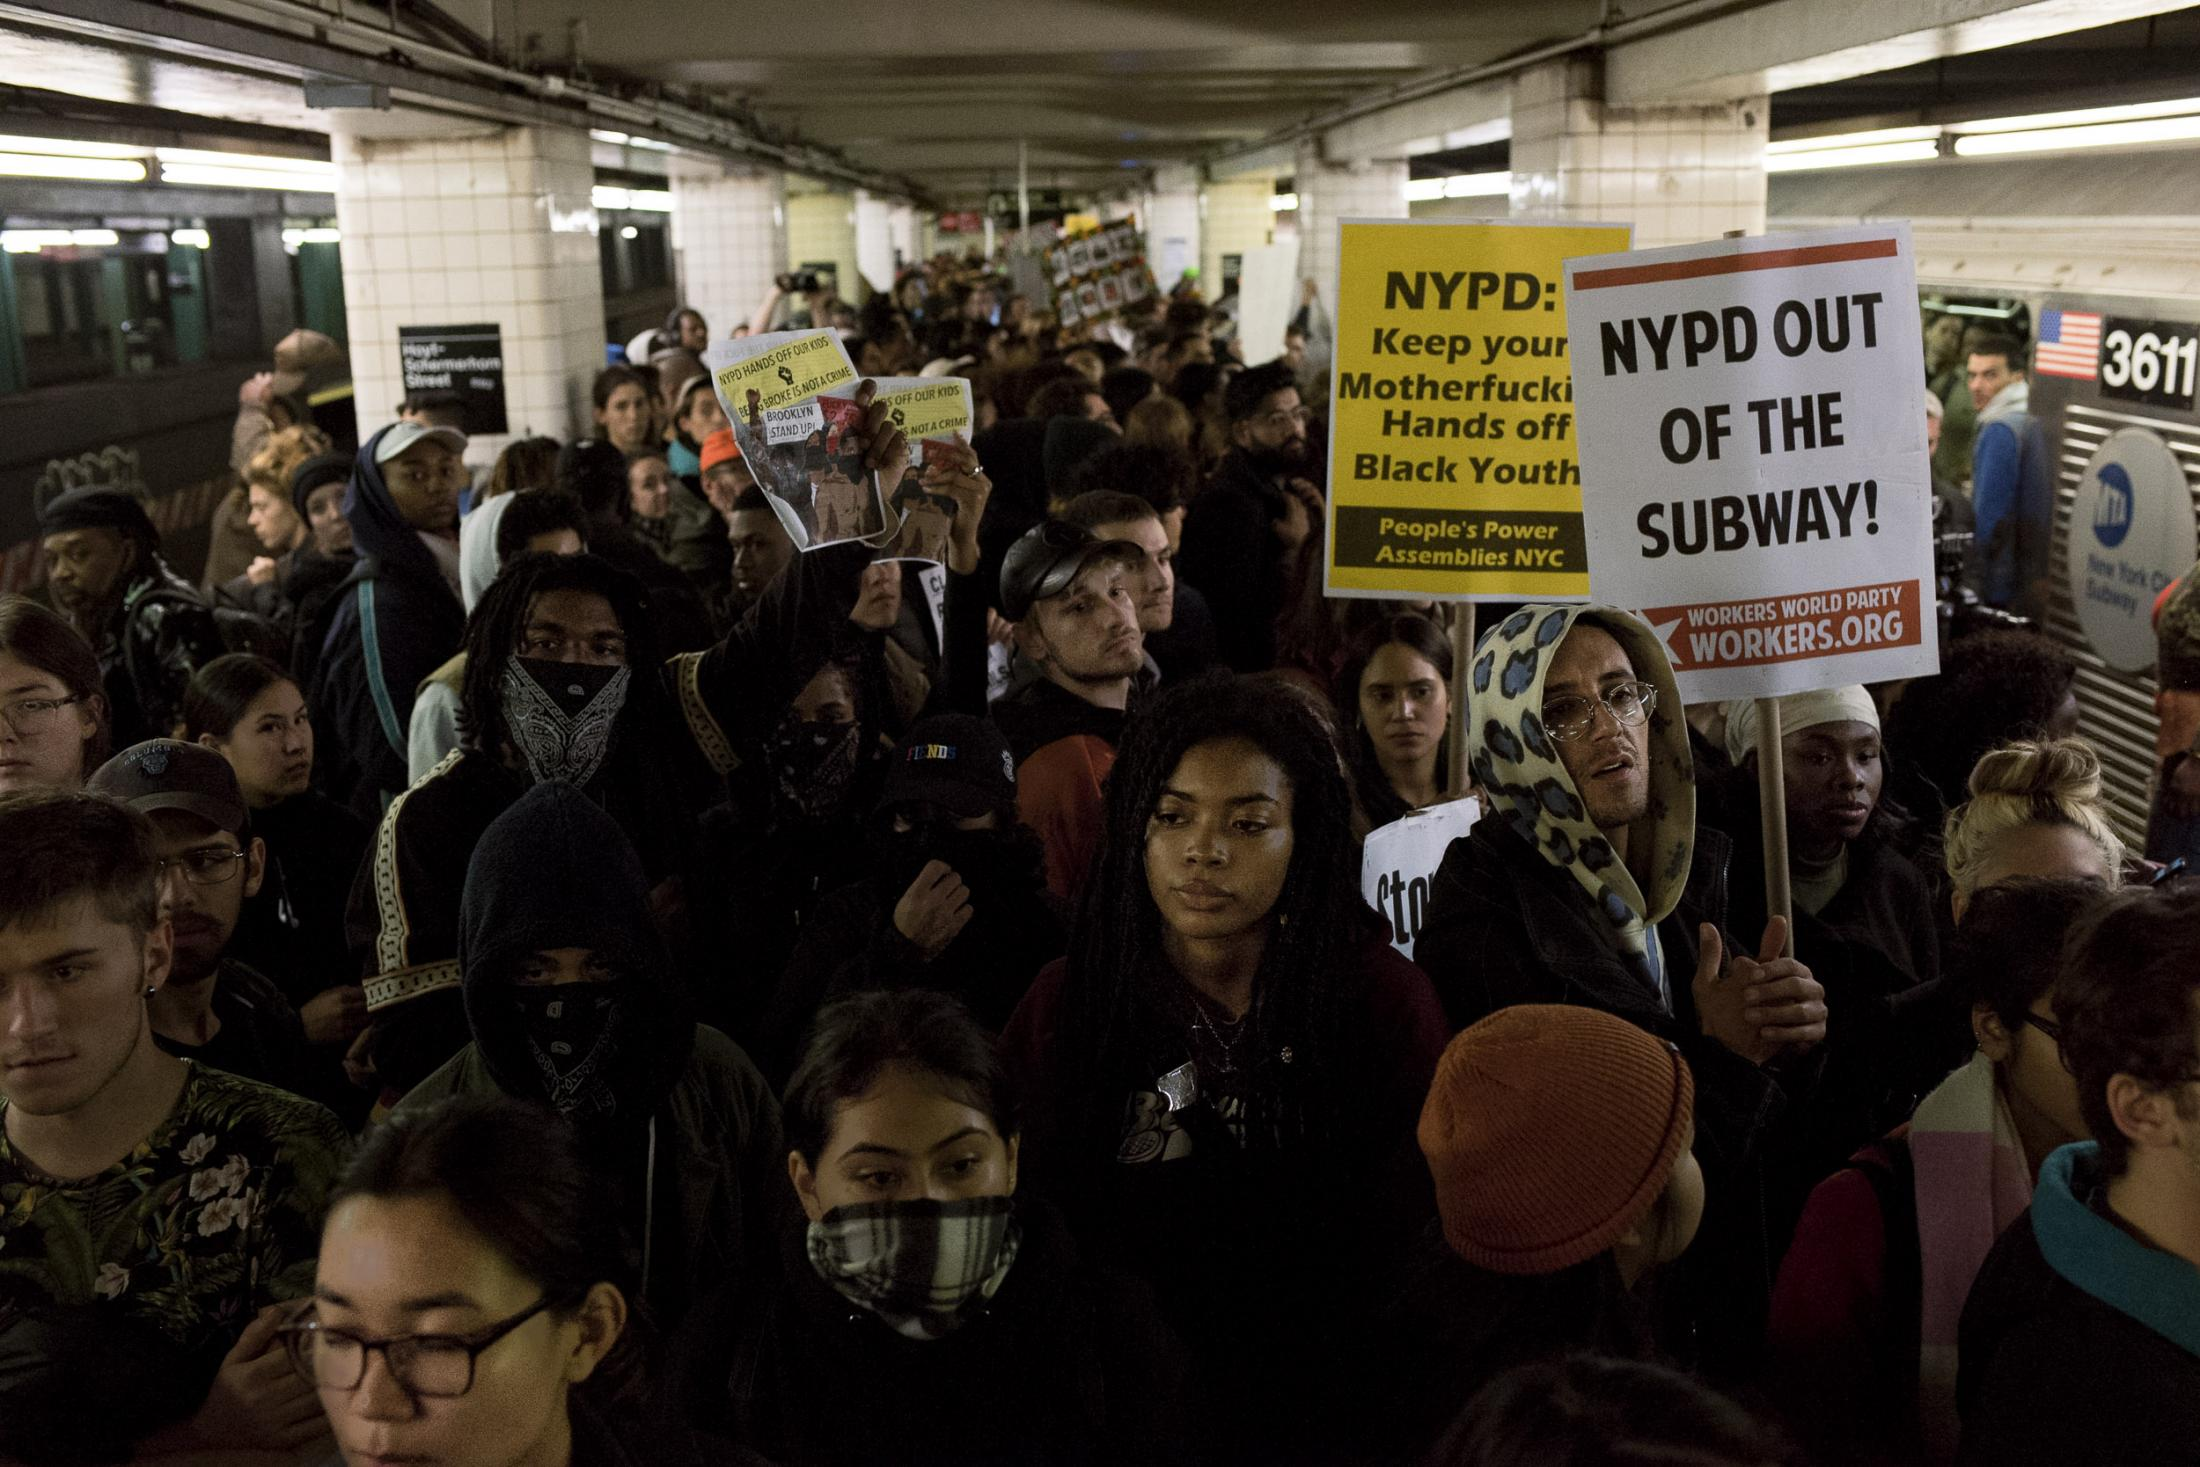 Hundreds of people filling up the platforms of Hoyt station in downtown Brooklyn, waiting for new trains to come to delay the service as a form of protest. Brooklyn, NY. November 2019